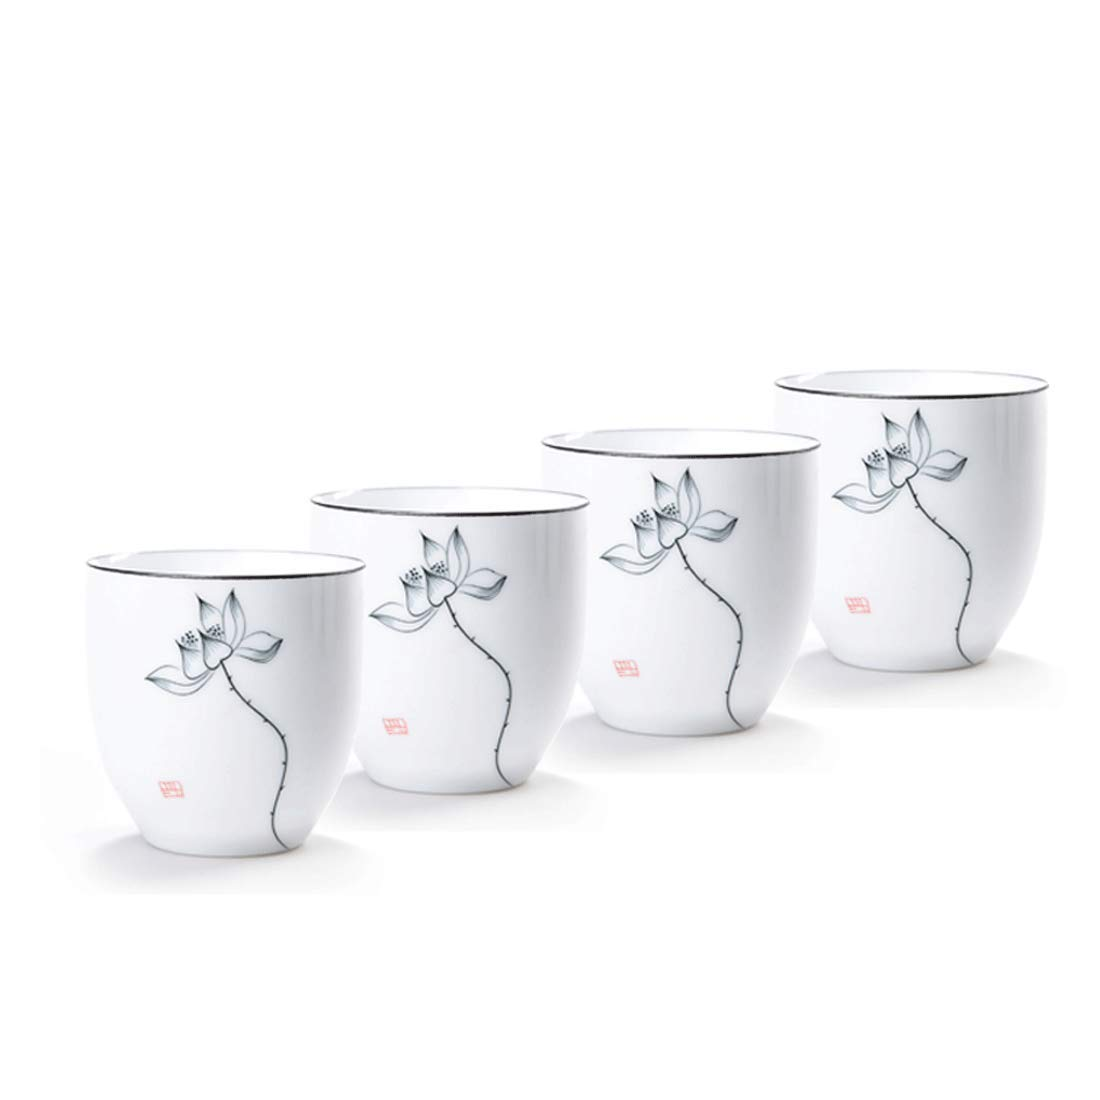 QMFIVE Hand Painted Ceramic Cup White Porcelain Cup - 4pcs(Bamboo)